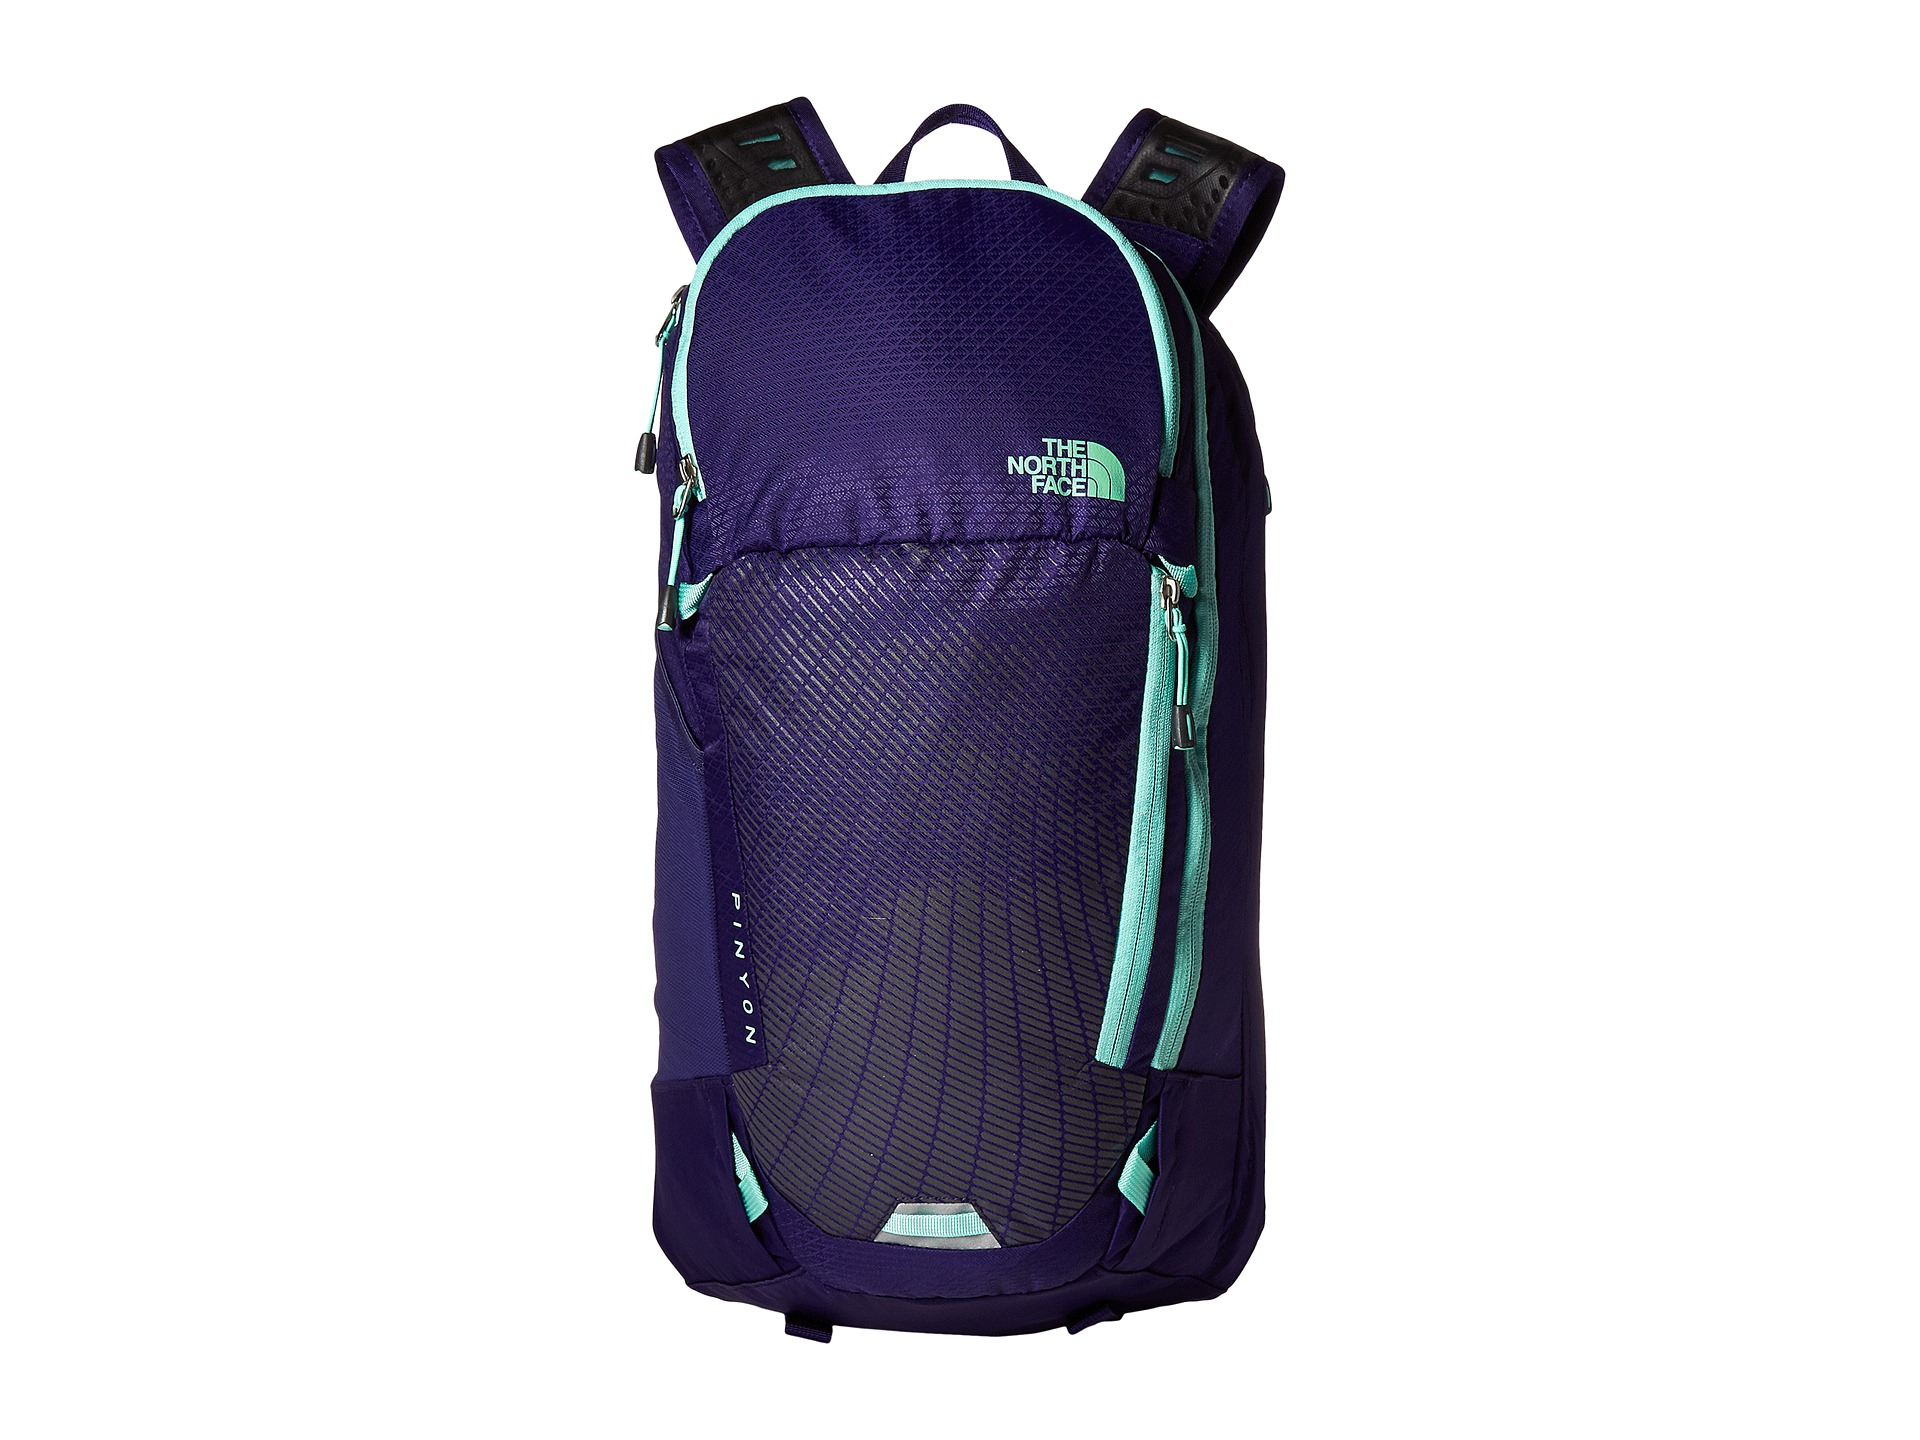 00de7d0706 Purple And Green North Face Backpack | The Shred Centre